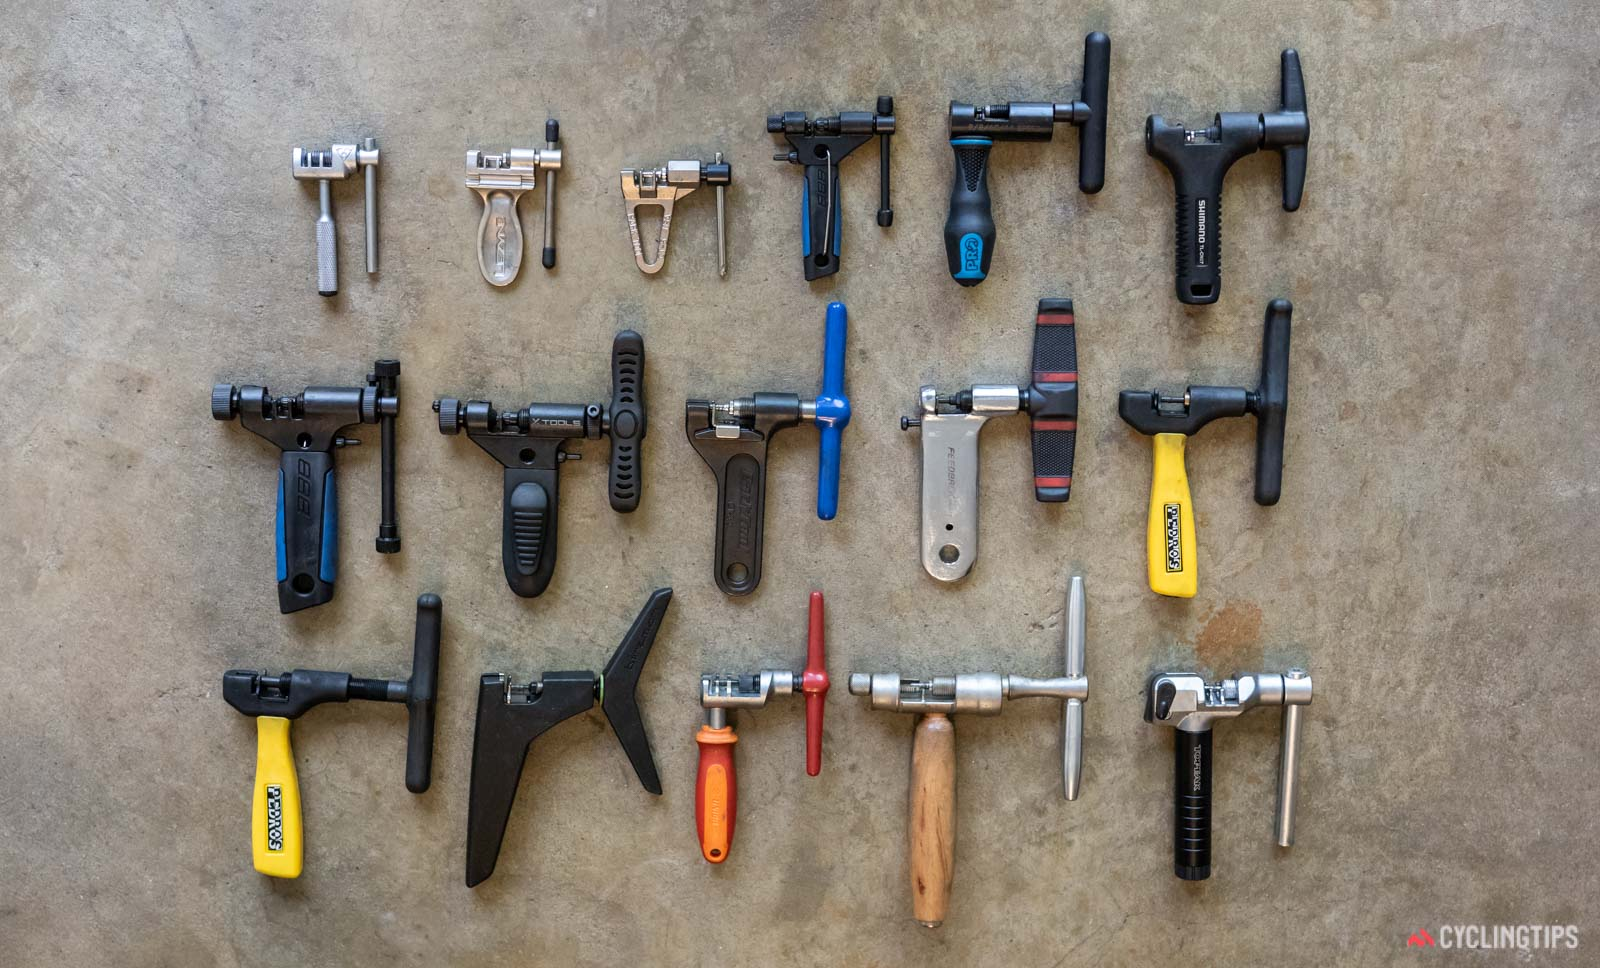 Chain breaker tools tested